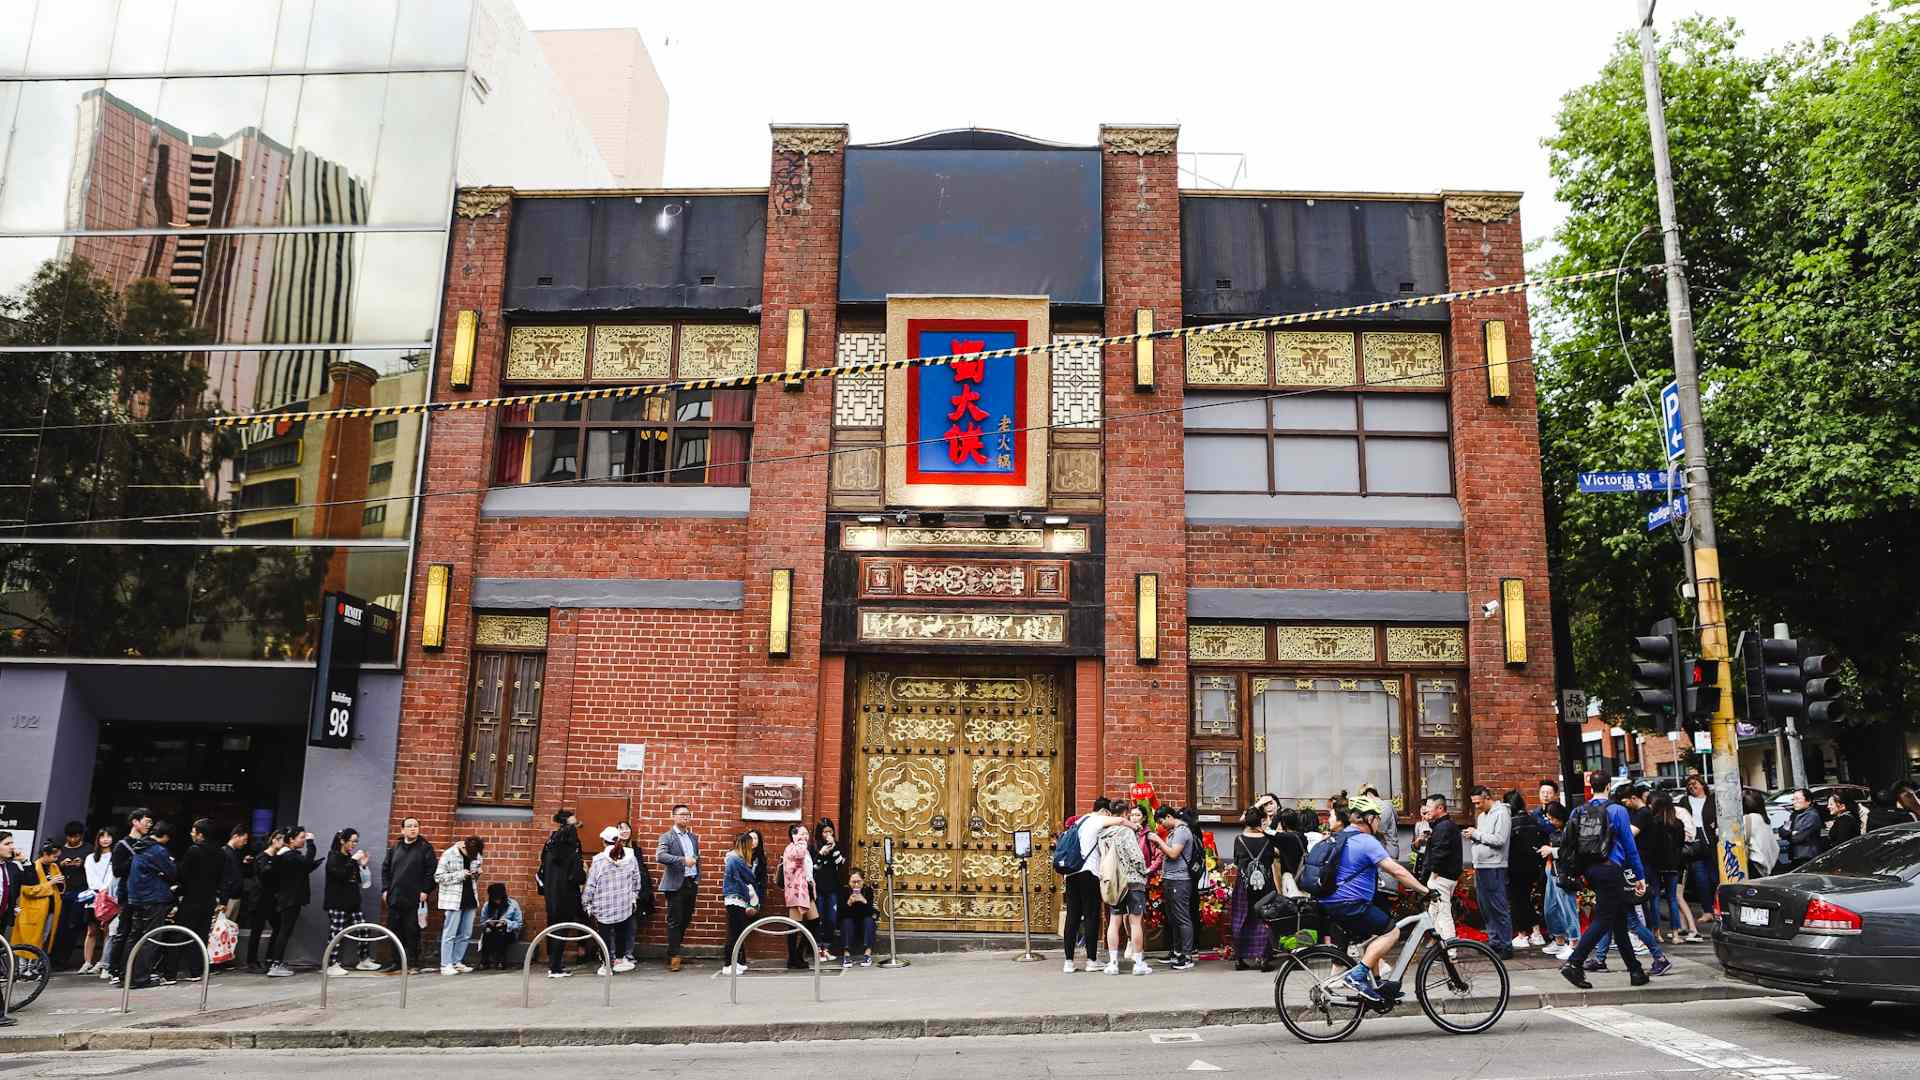 This Melbourne Building Has Been Turned Into an OTT Two-Storey Panda Hot Pot Restaurant